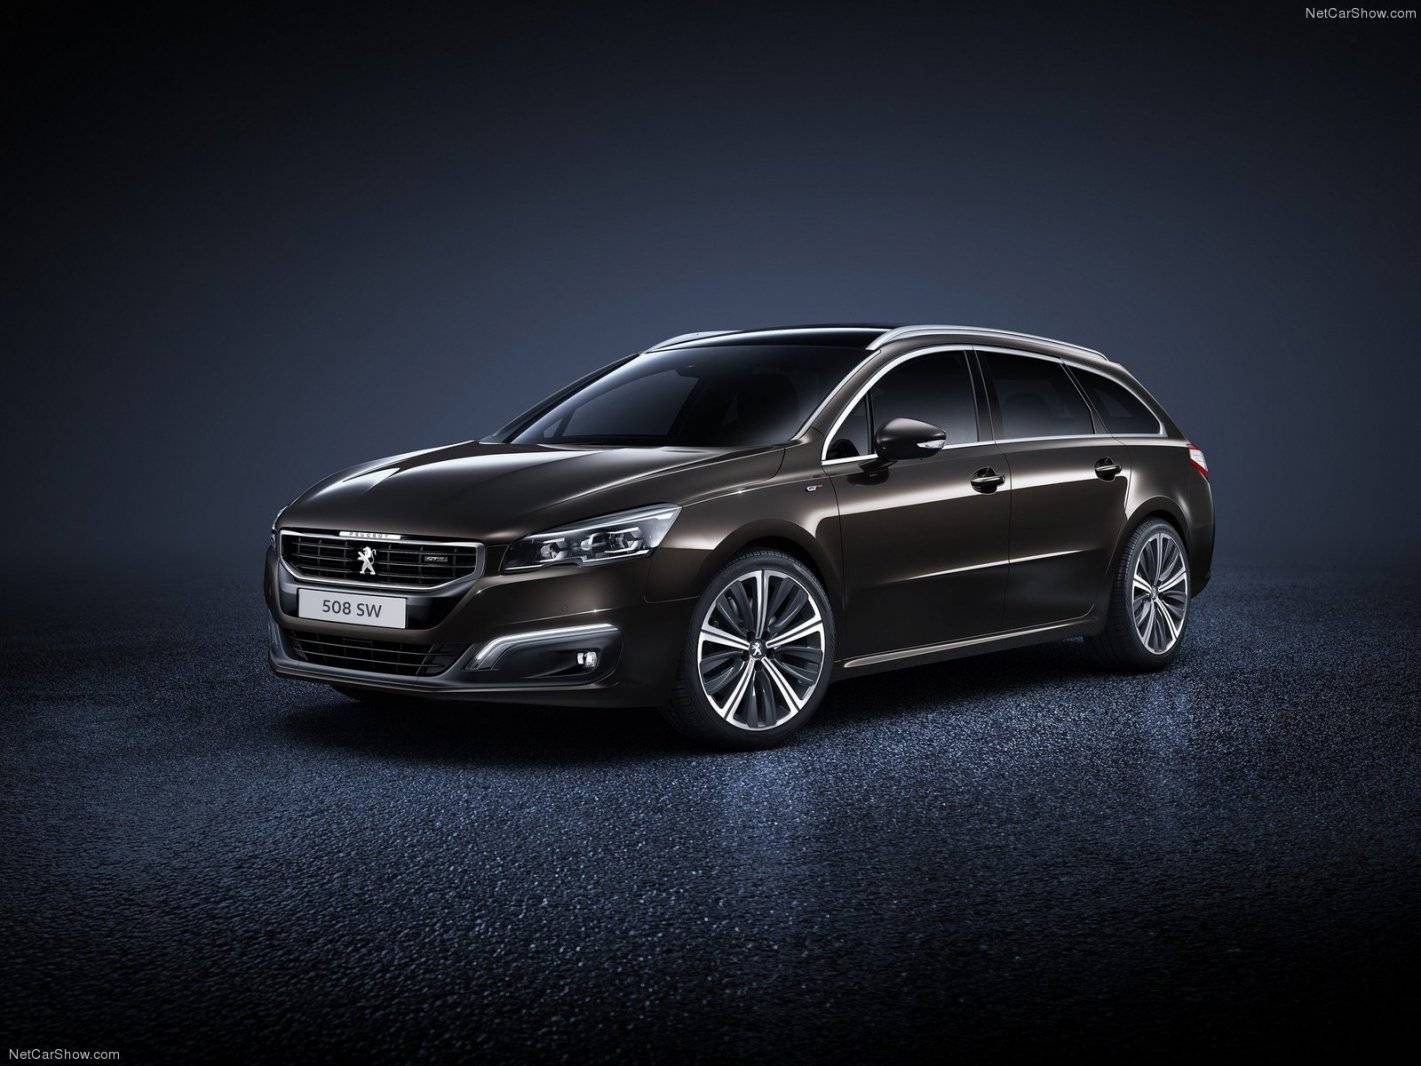 orderboek vernieuwde peugeot 508 geopend. Black Bedroom Furniture Sets. Home Design Ideas